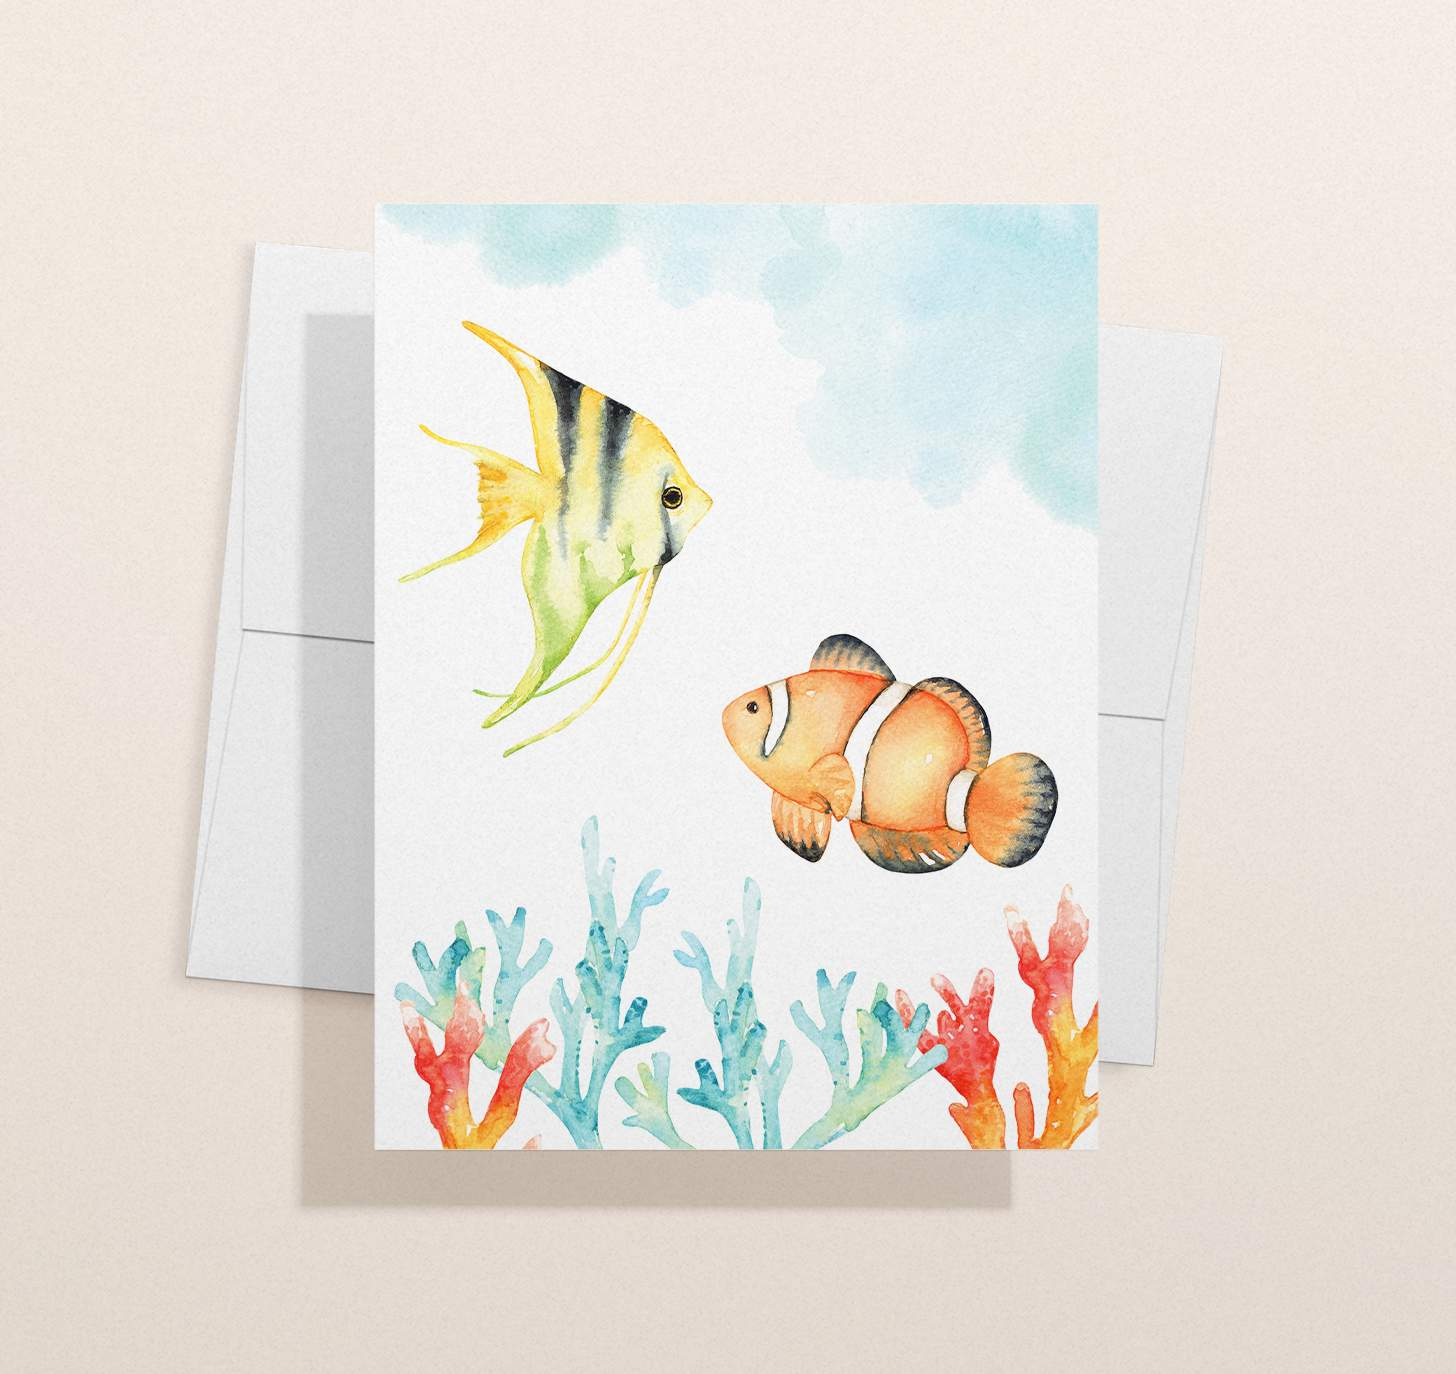 Watercolor tropical fish design with envelope